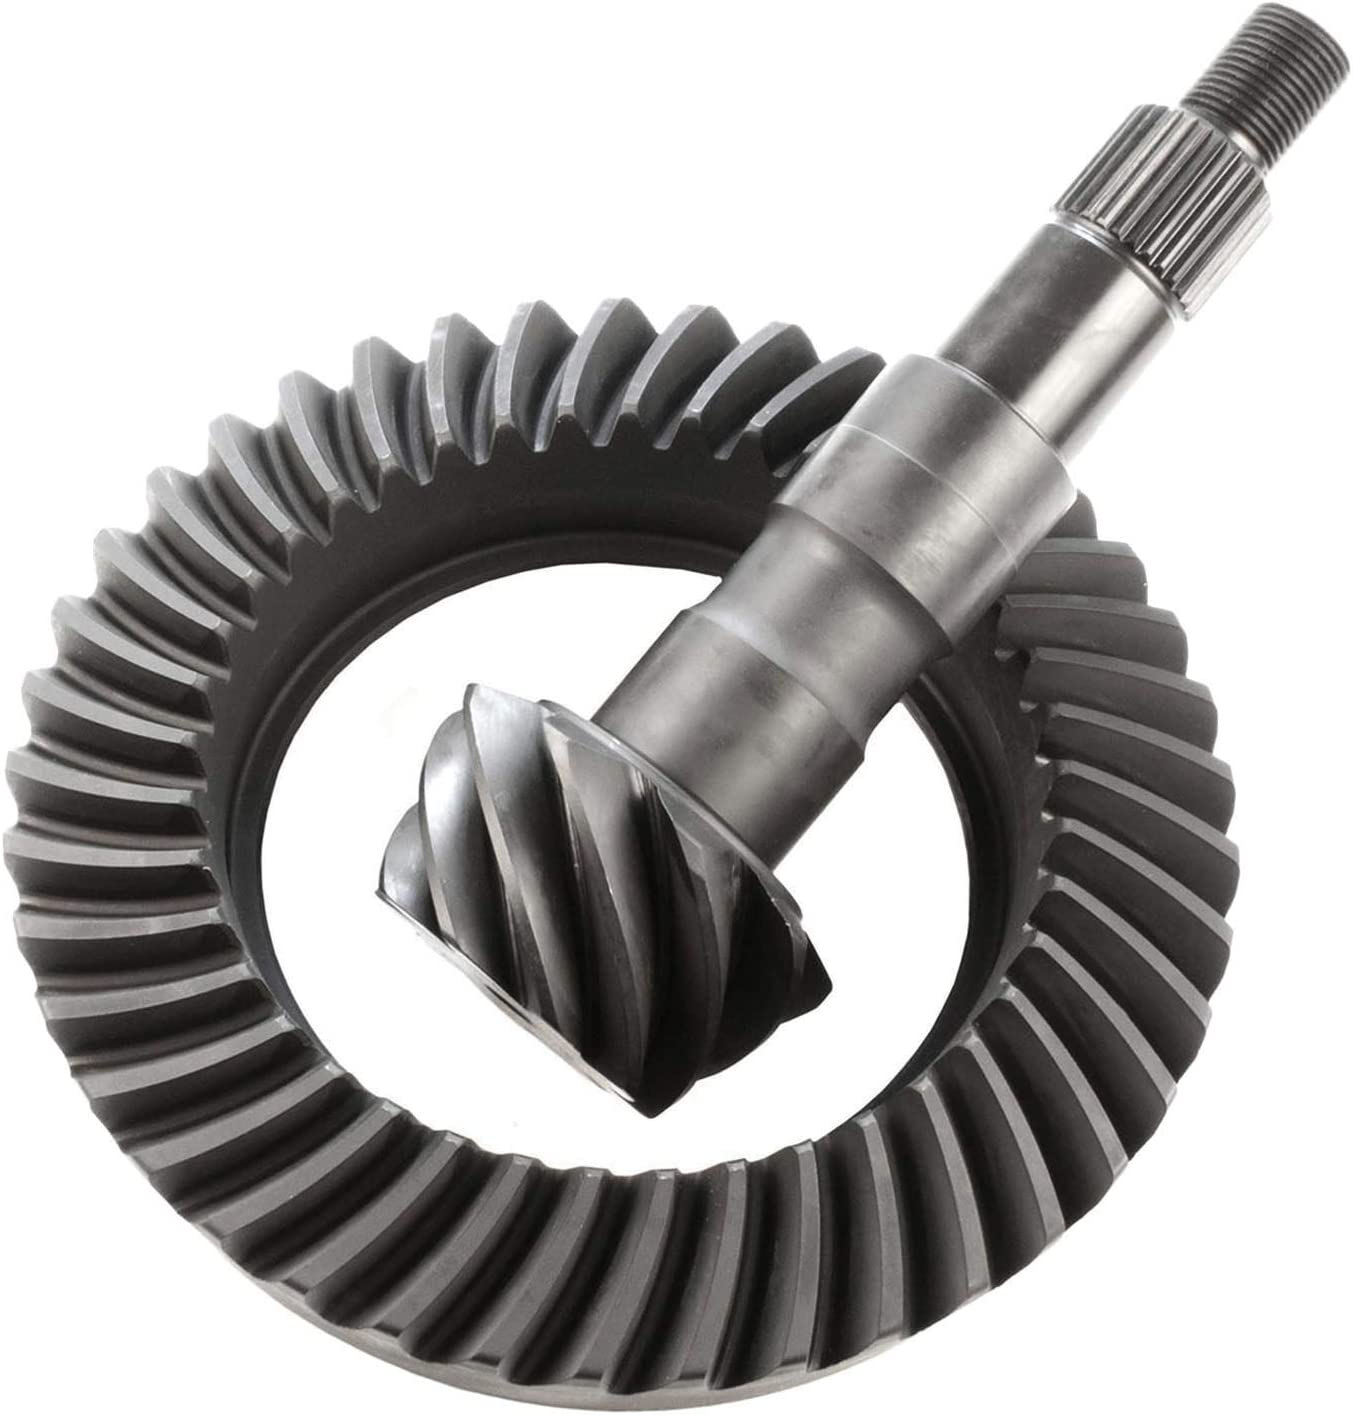 Motive Gear GM10-411 Ring Low price and Pinion 4.11 Style 8.6